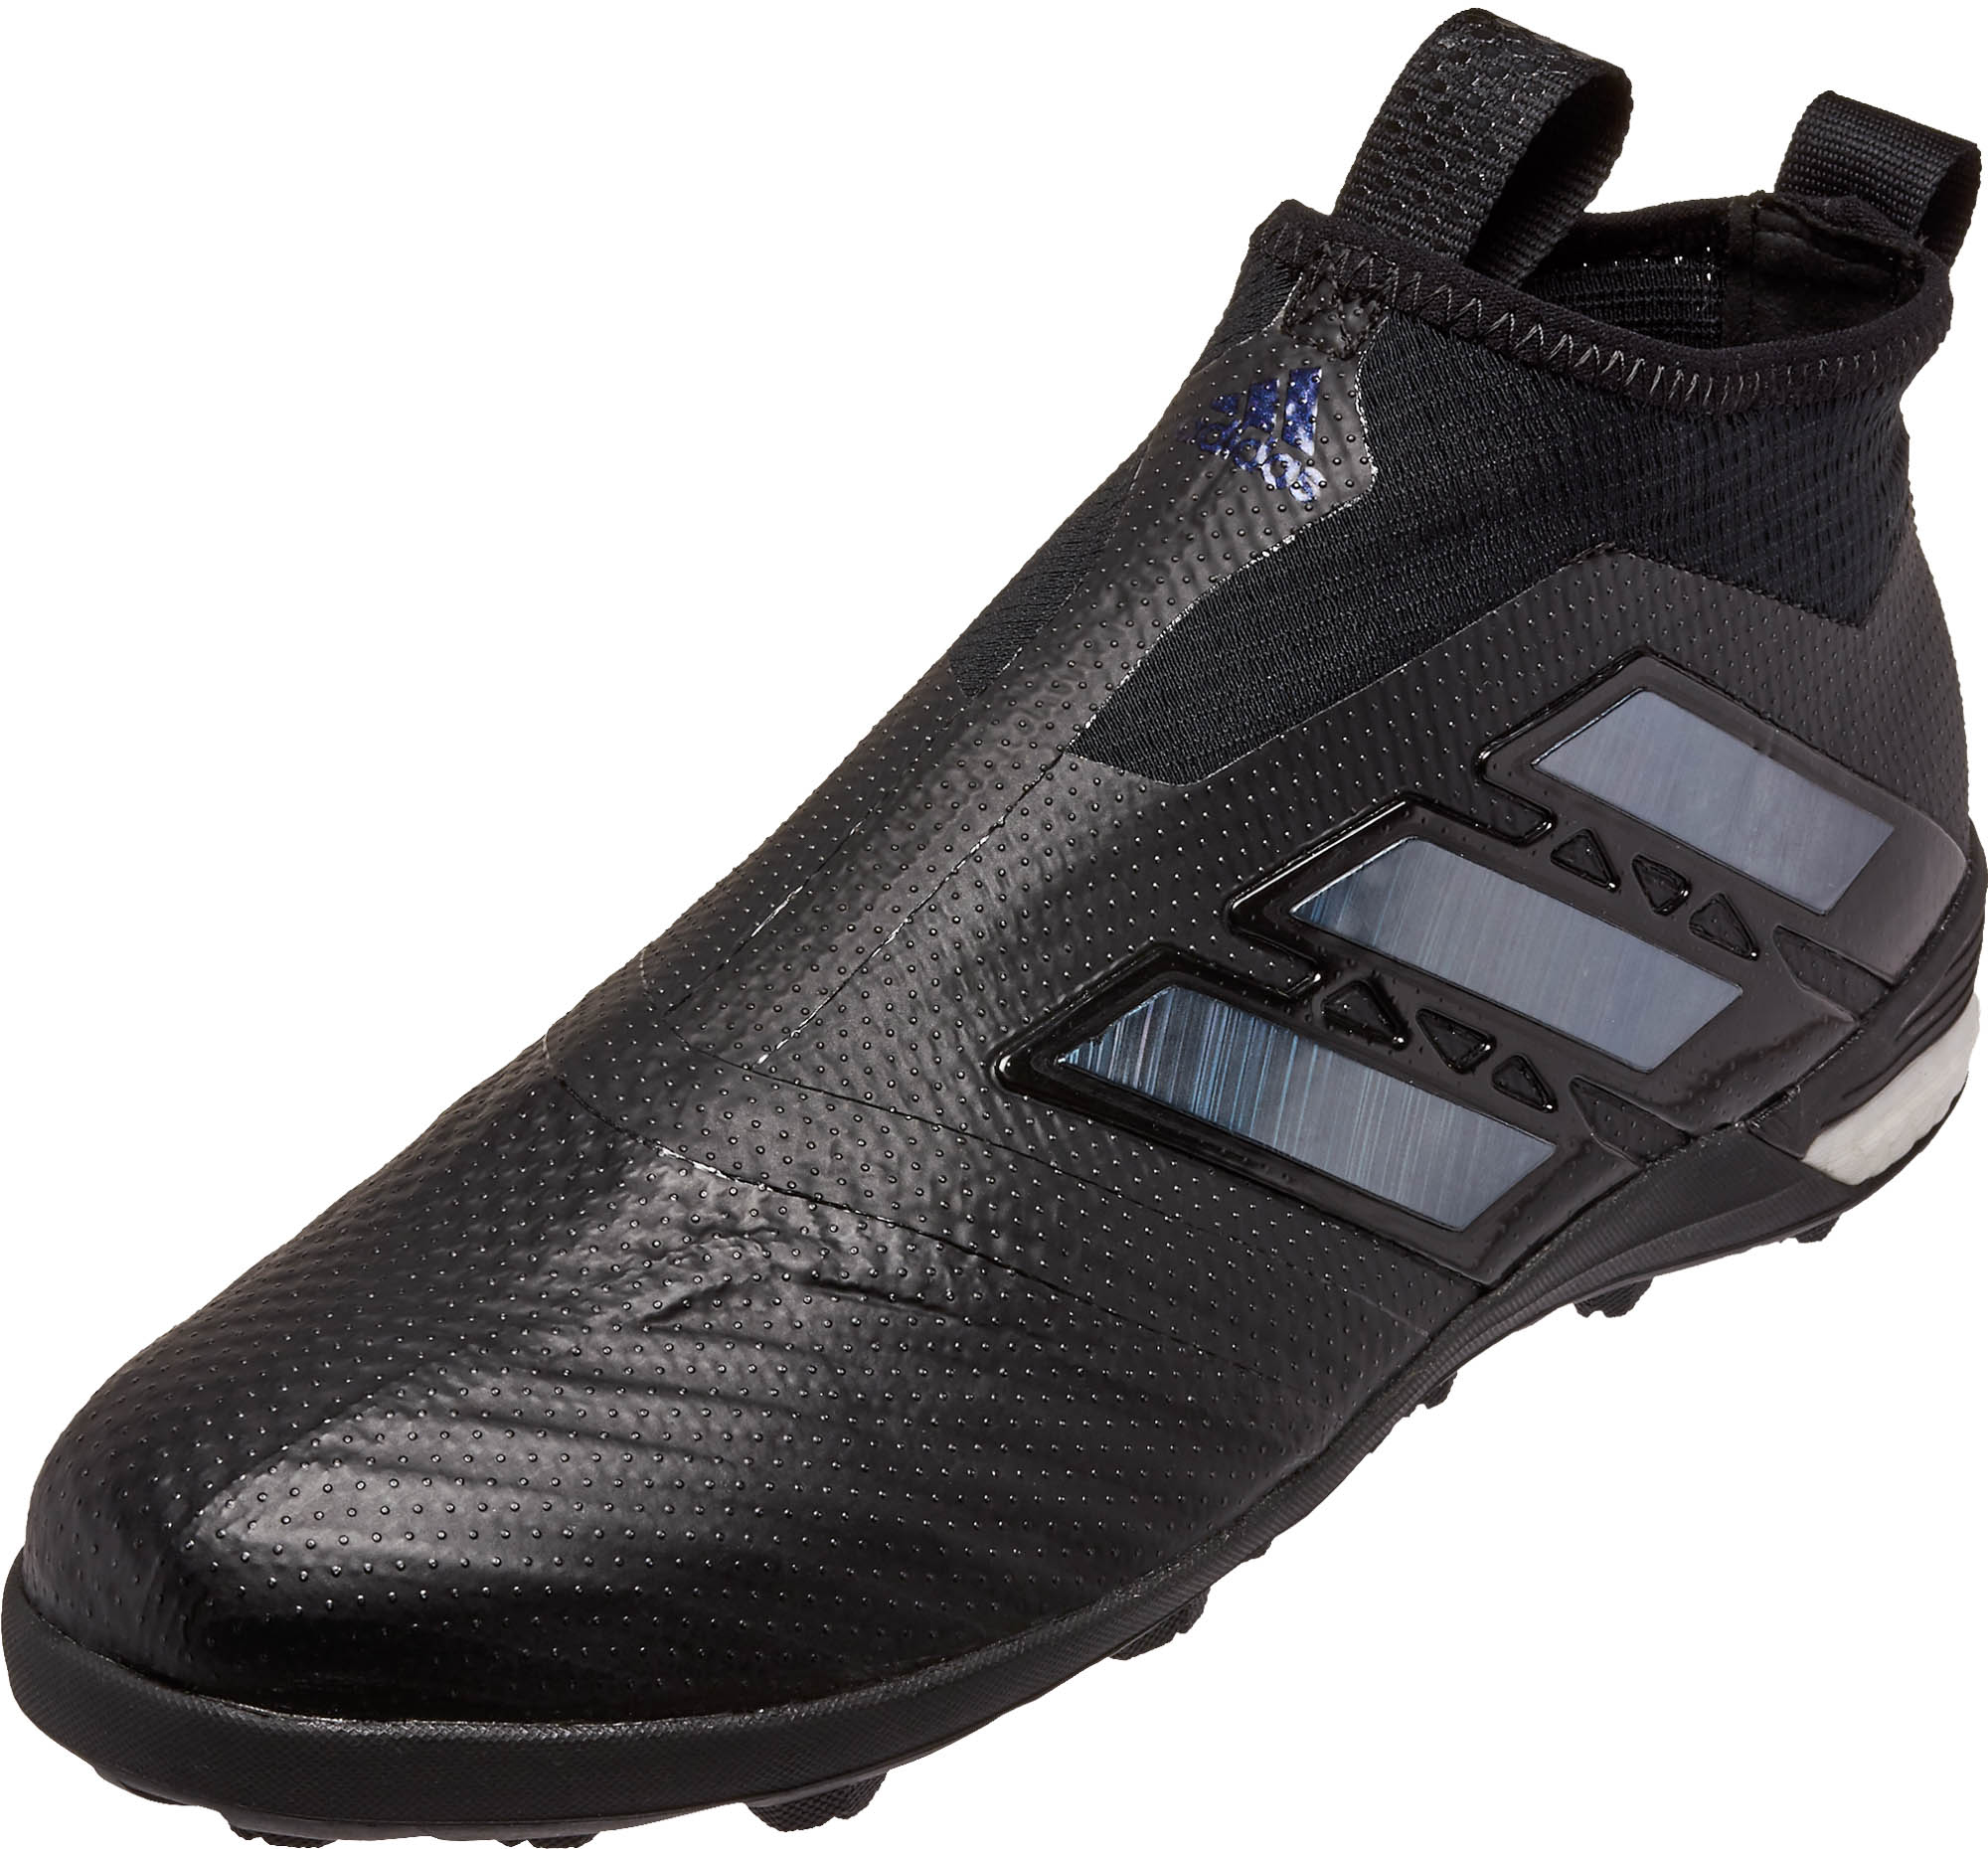 sports shoes 4ee4c b409c adidas ACE Tango 17 Purecontrol TF – Black